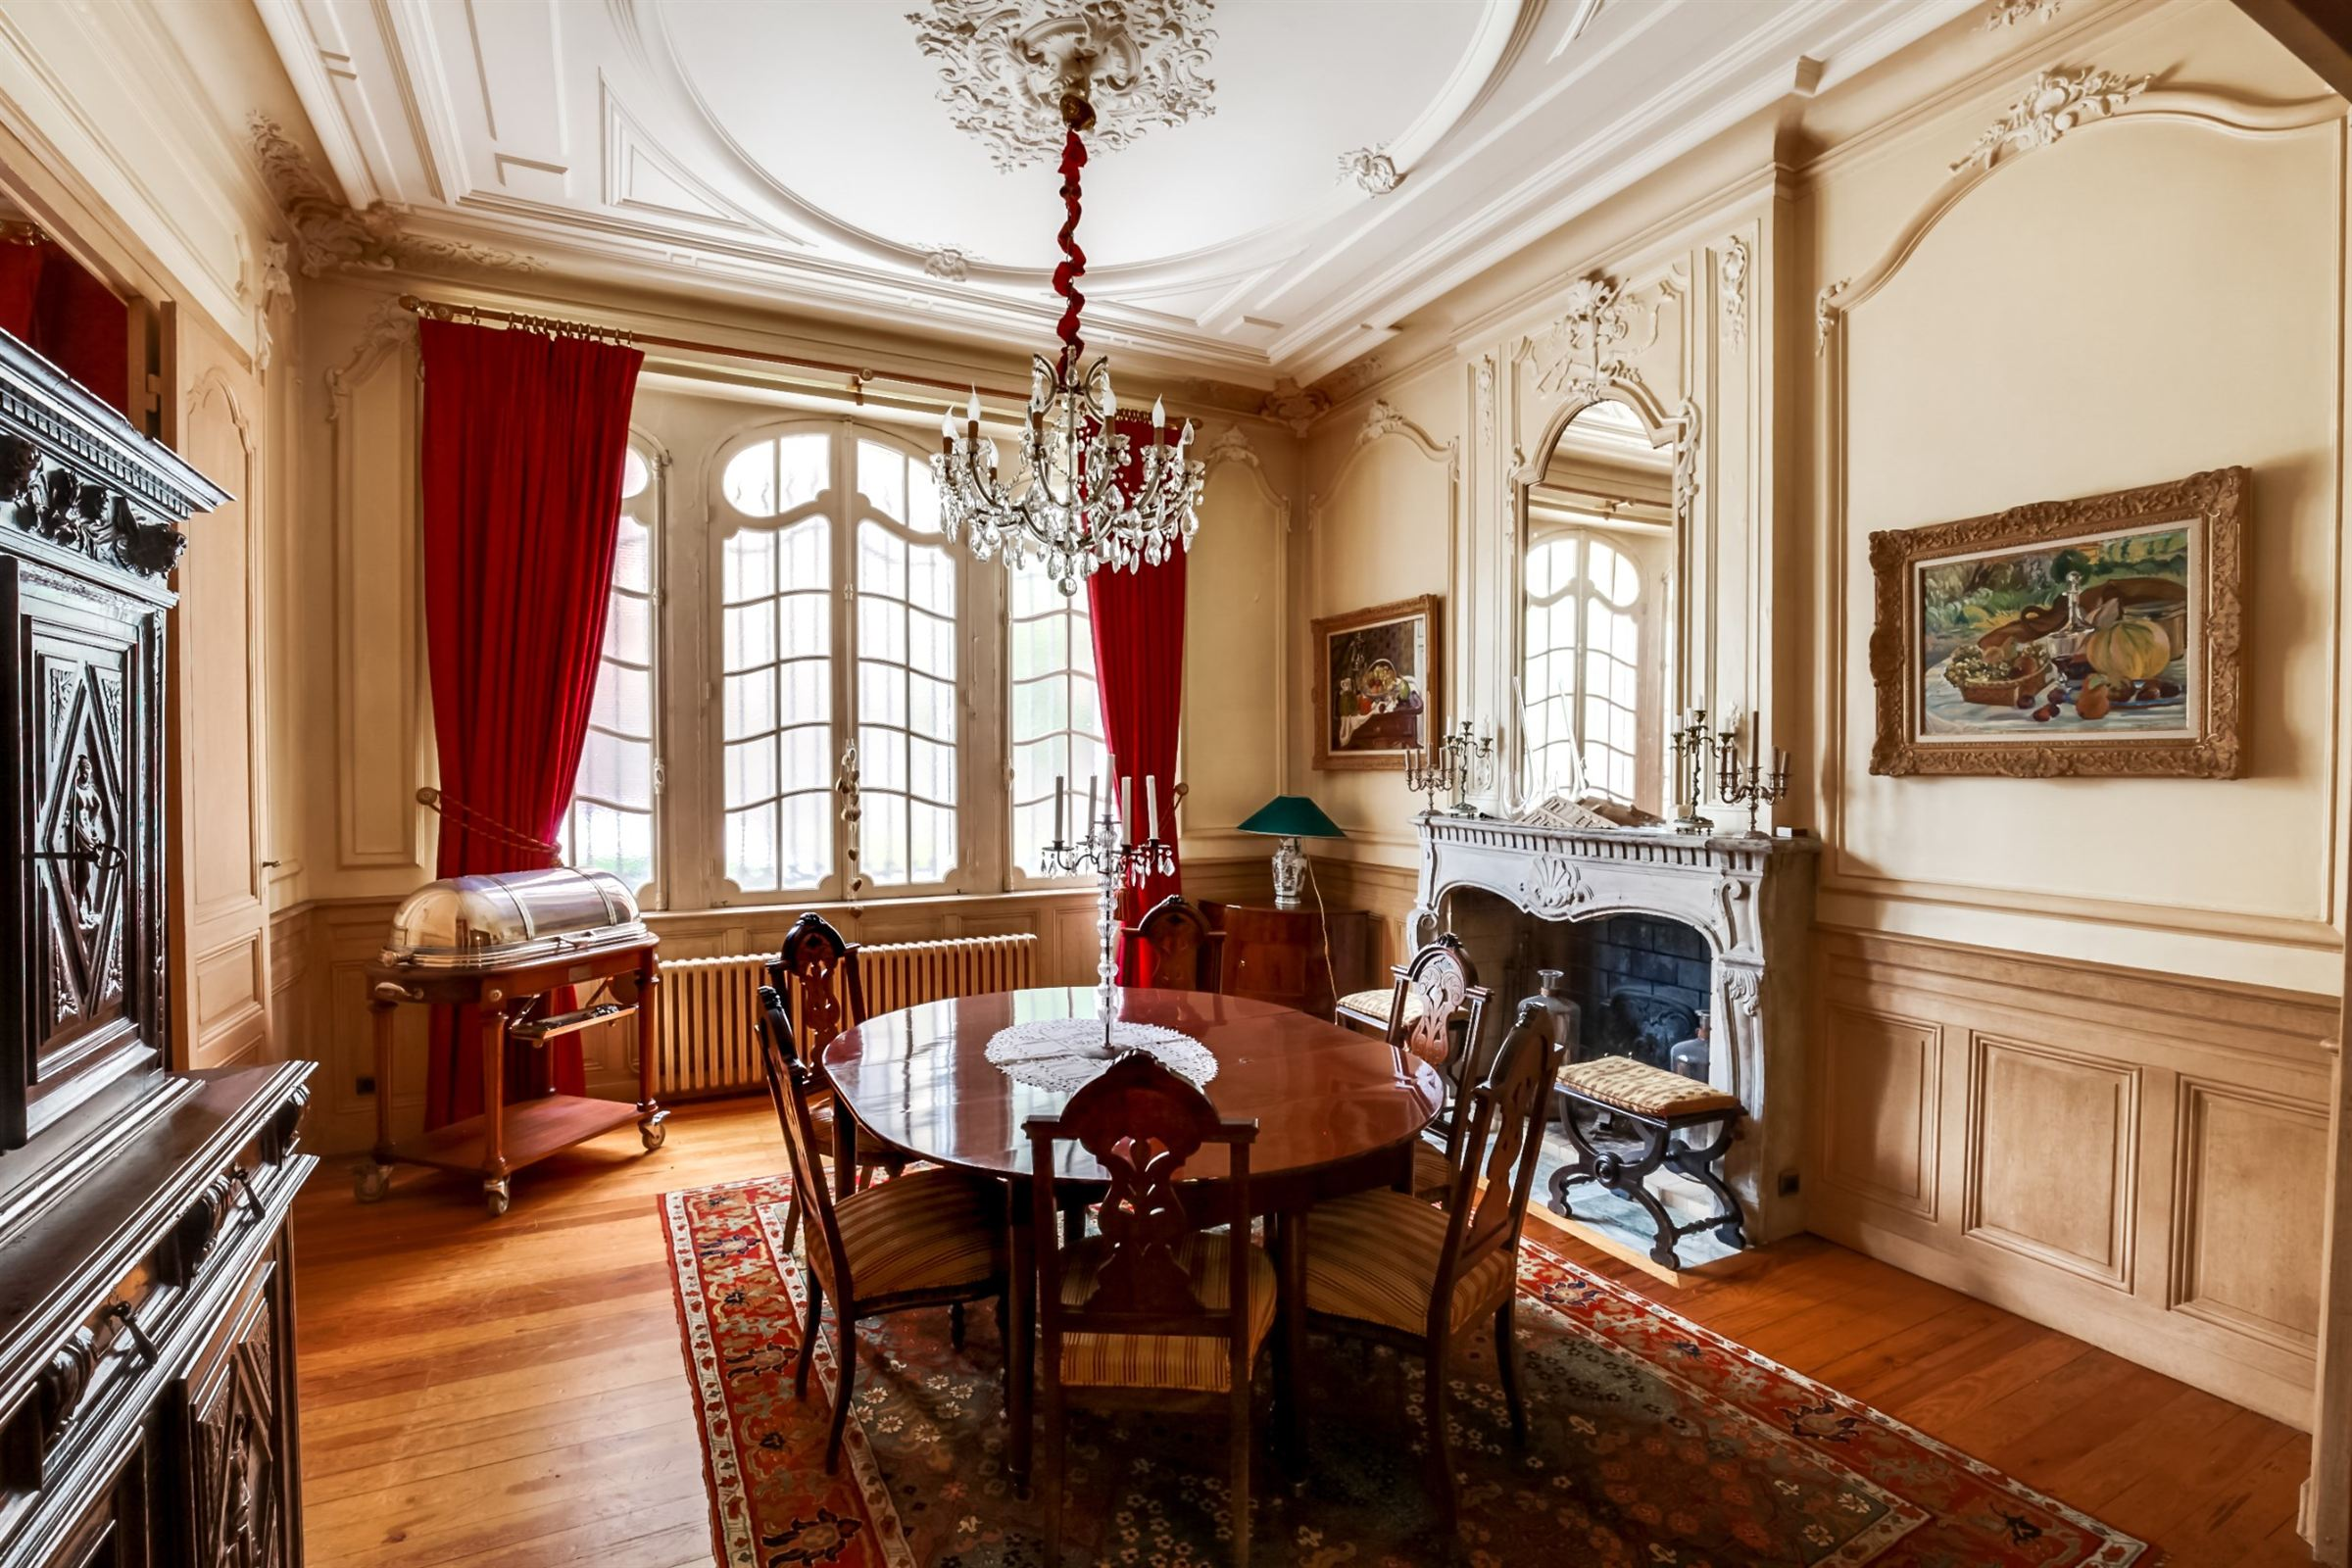 獨棟家庭住宅 為 出售 在 BORDEAUX ST SEURIN DISTRICT VERY NICE PRIVATE LUXURY TOWNHOUSE Bordeaux, 阿基坦, 33000 法國